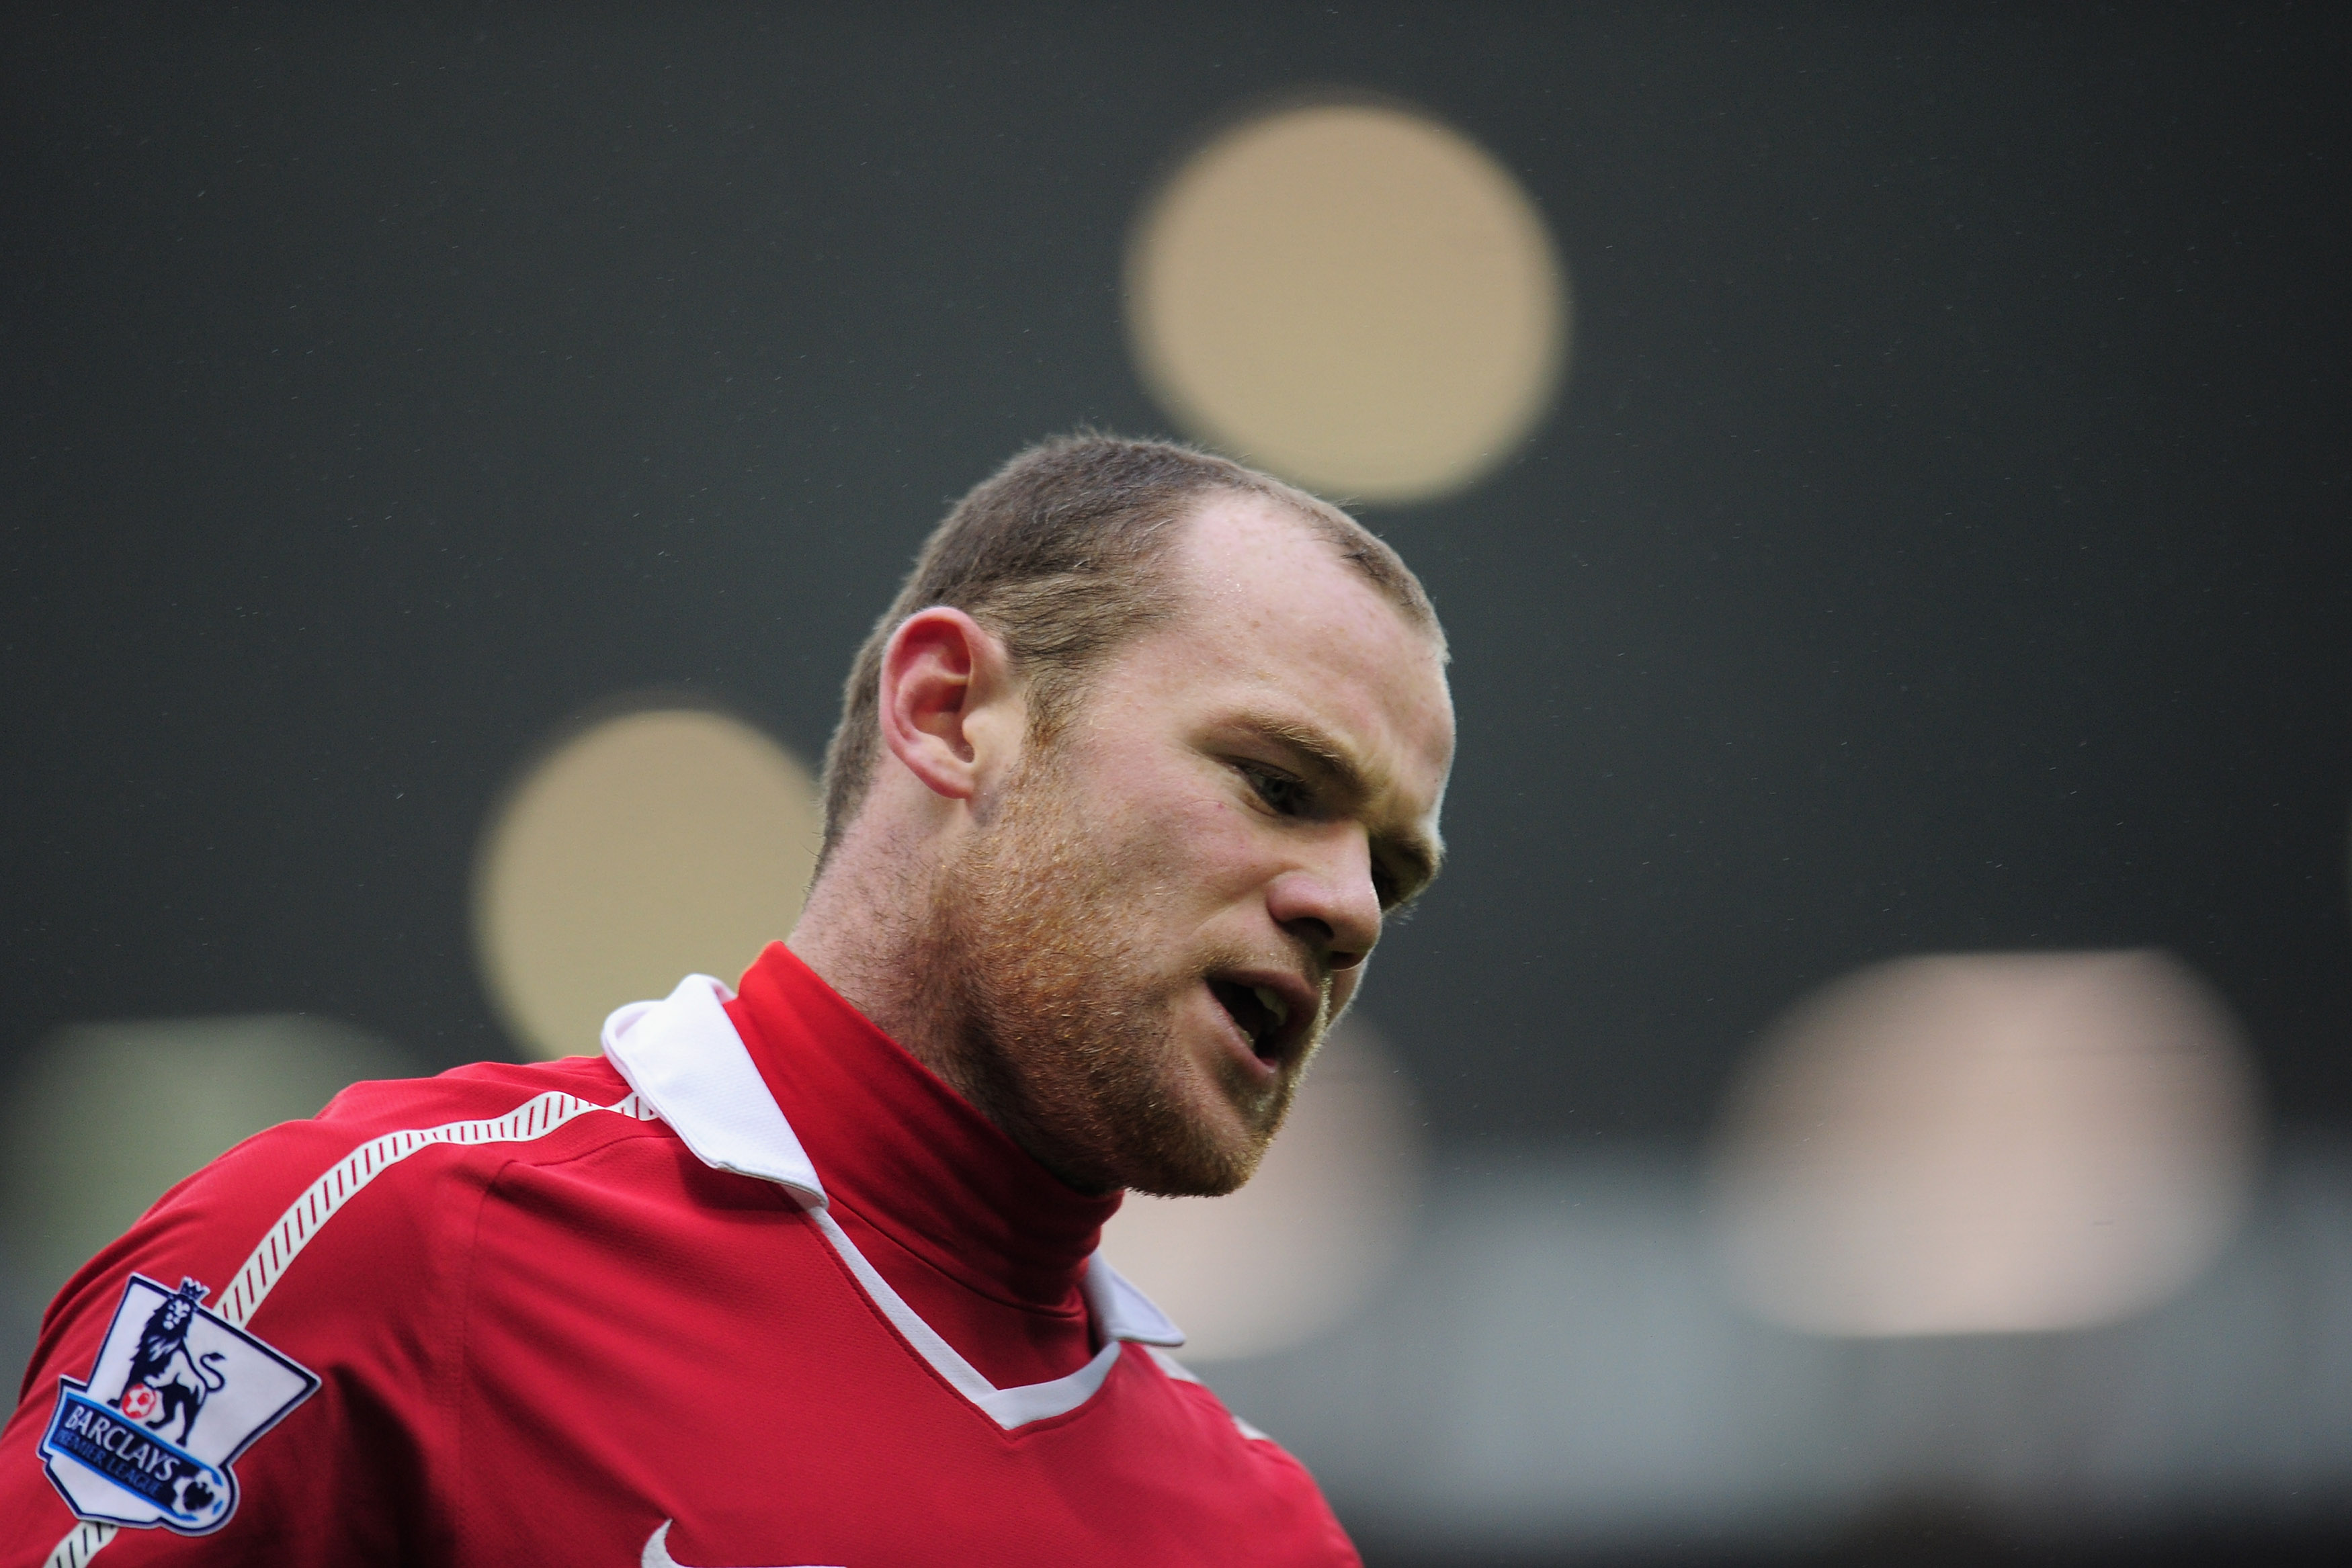 WEST BROMWICH, ENGLAND - JANUARY 01:  Wayne Rooney of Manchester United  during the Barclays Premier League match between West Bromich Albion and Manchester United at The Hawthorns on January 1, 2011 in West Bromwich, England.  (Photo by Shaun Botterill/G